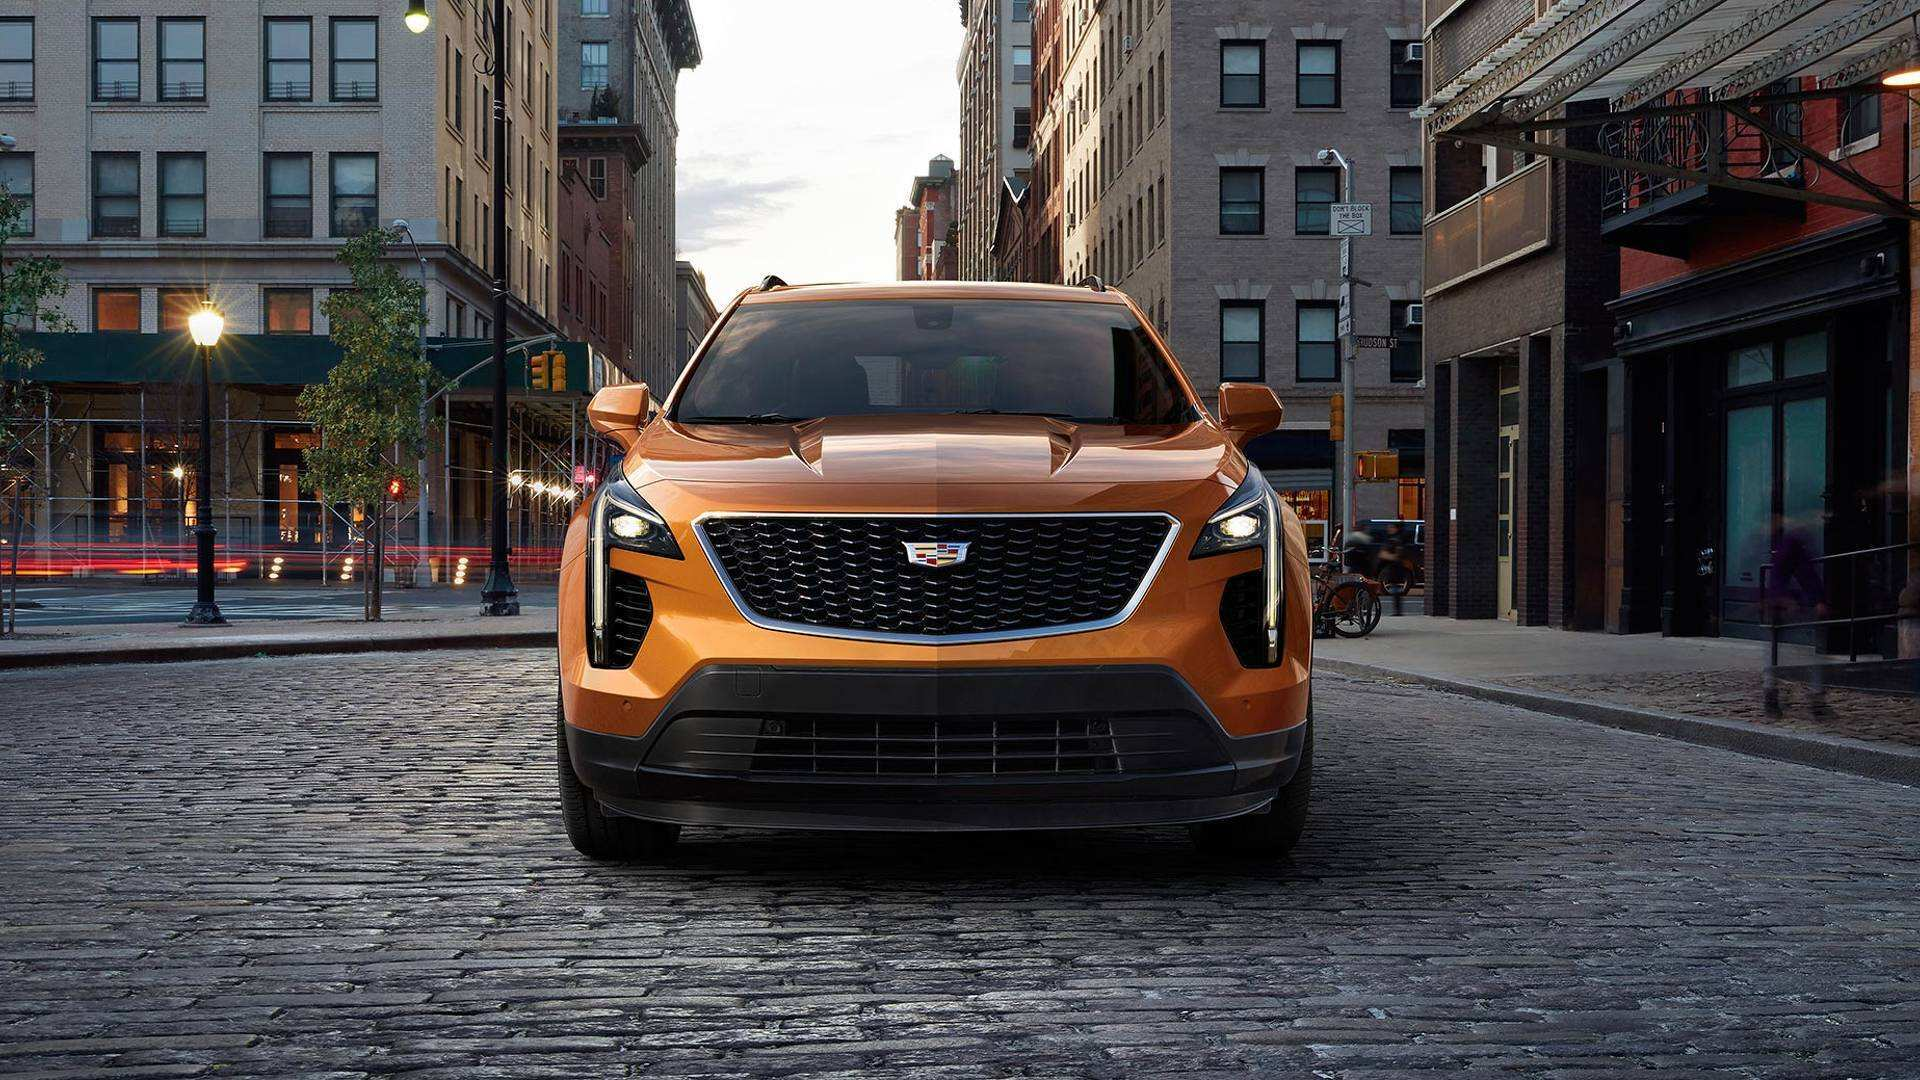 69 Concept of New Cadillac 2019 Xt4 Price Interior by New Cadillac 2019 Xt4 Price